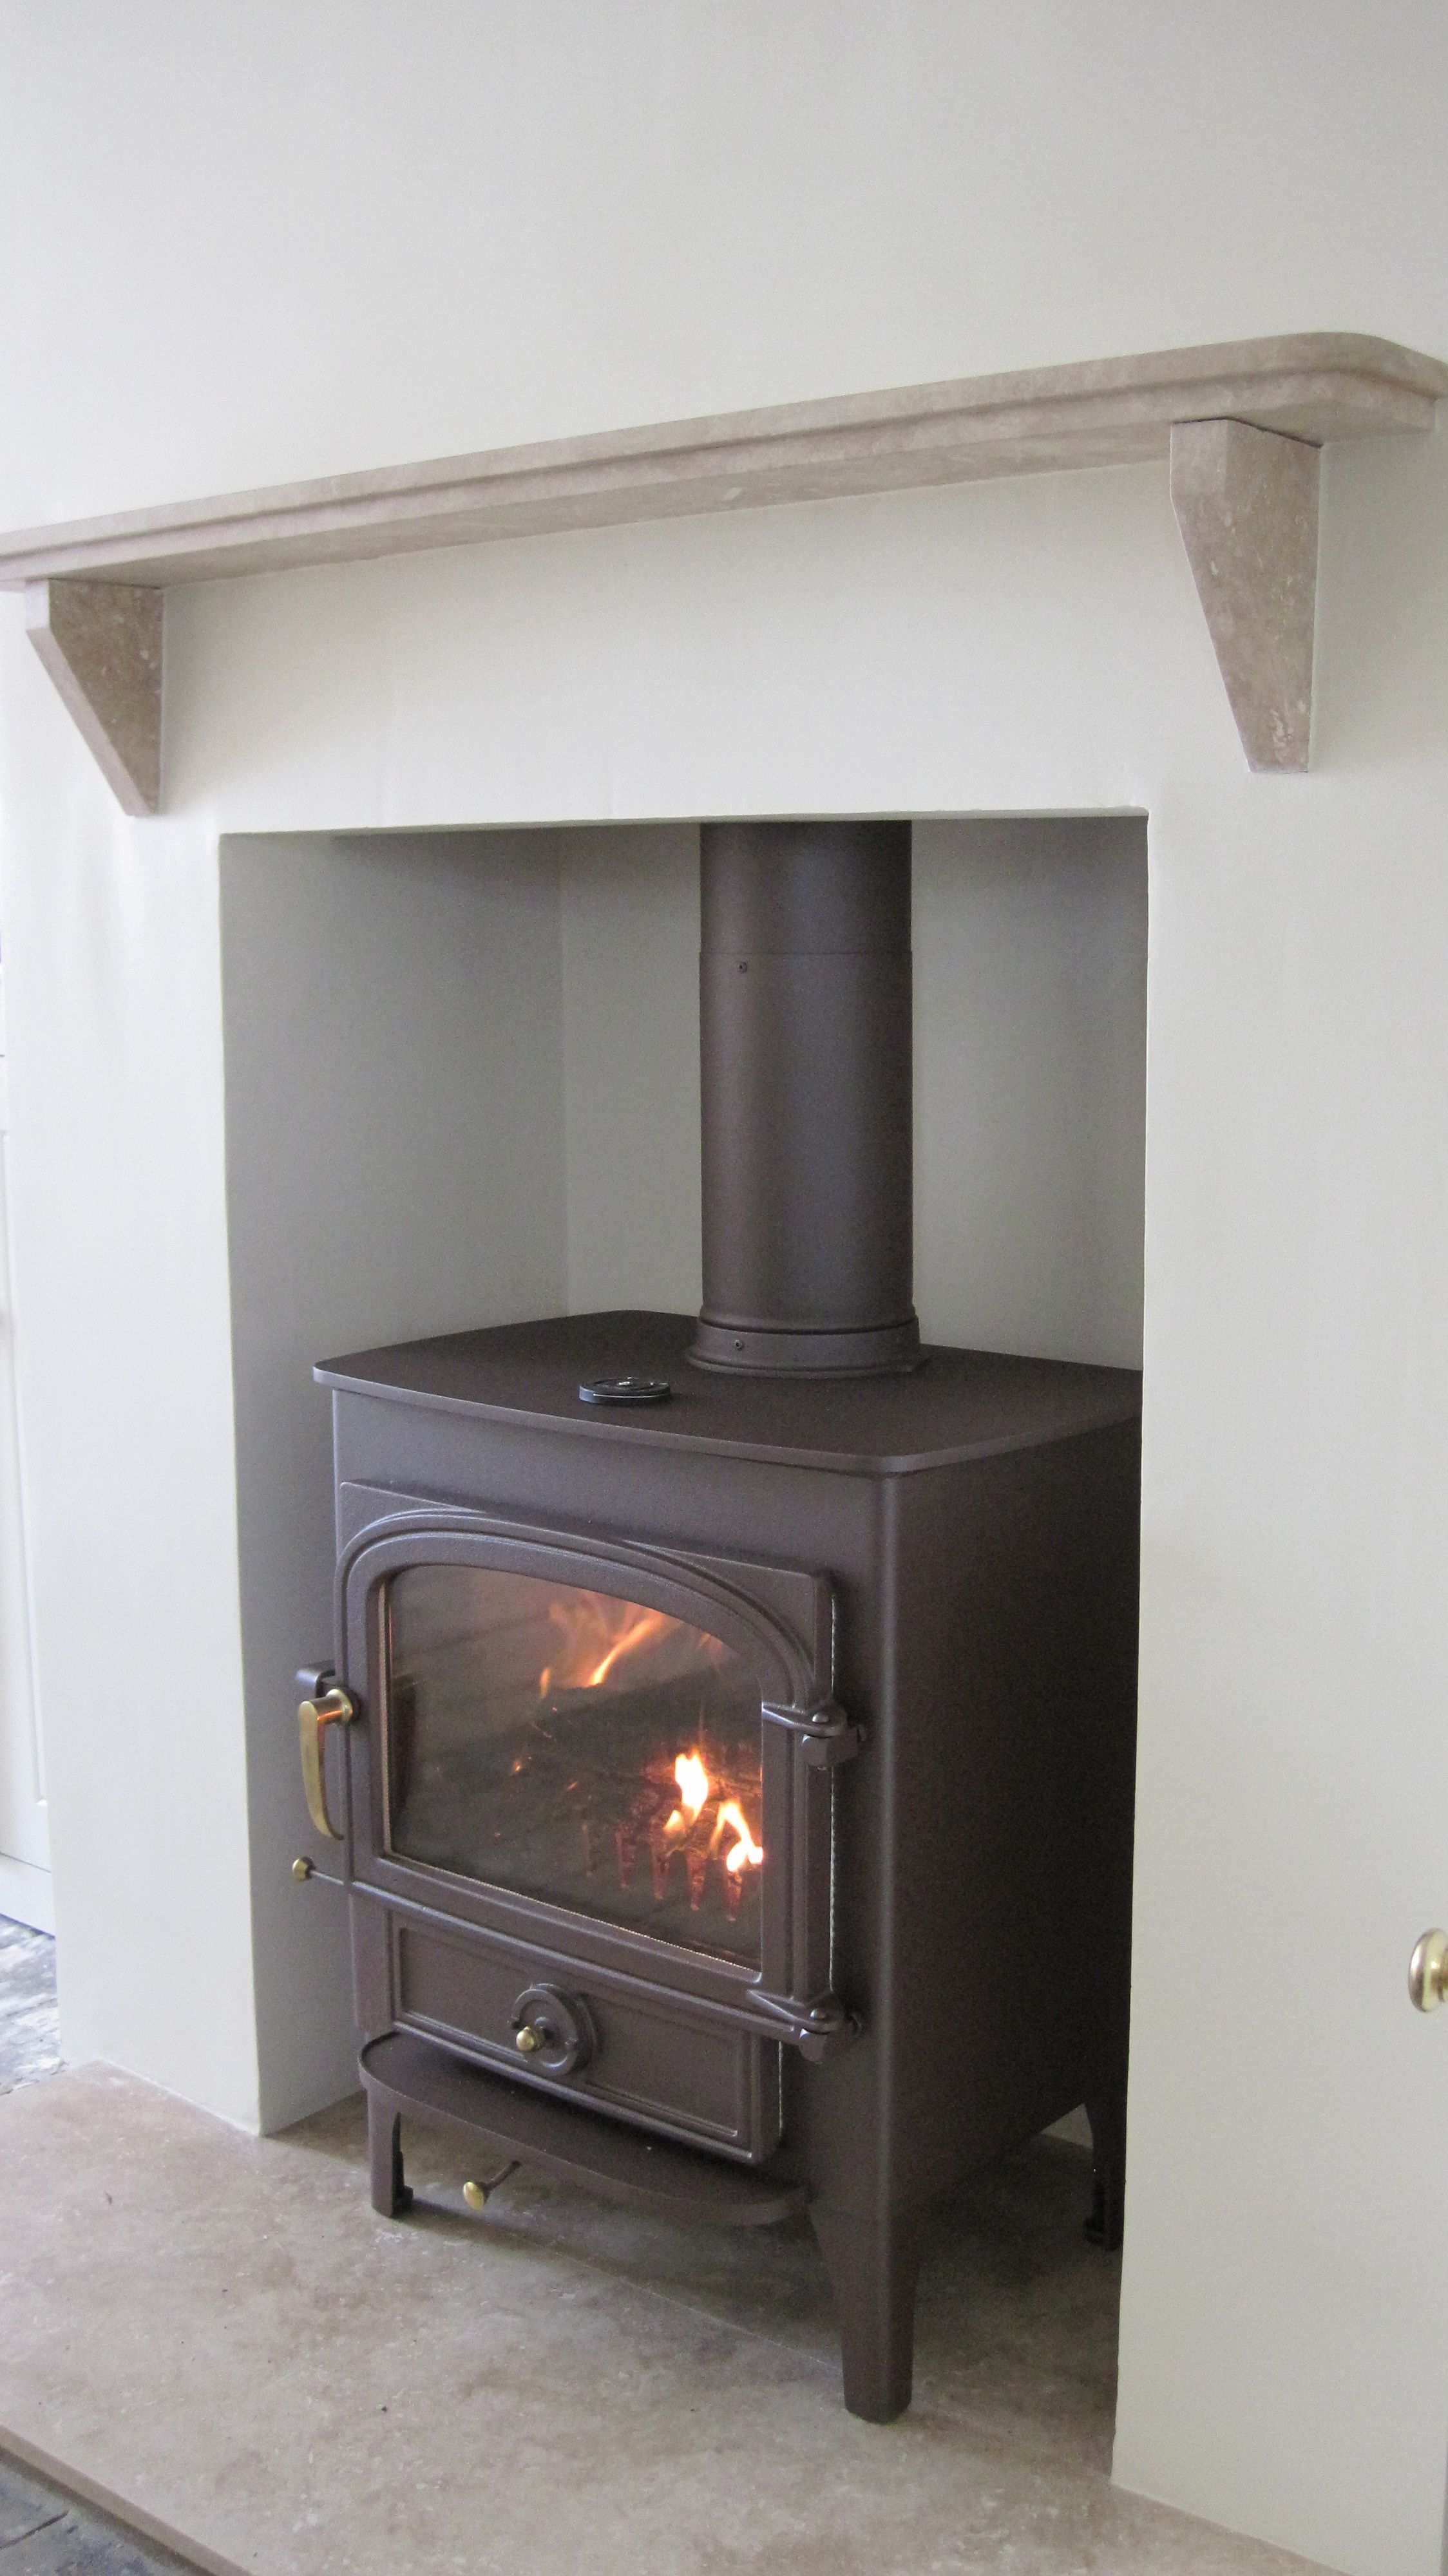 Clearview vision wood burner in mahogany brown and turkish